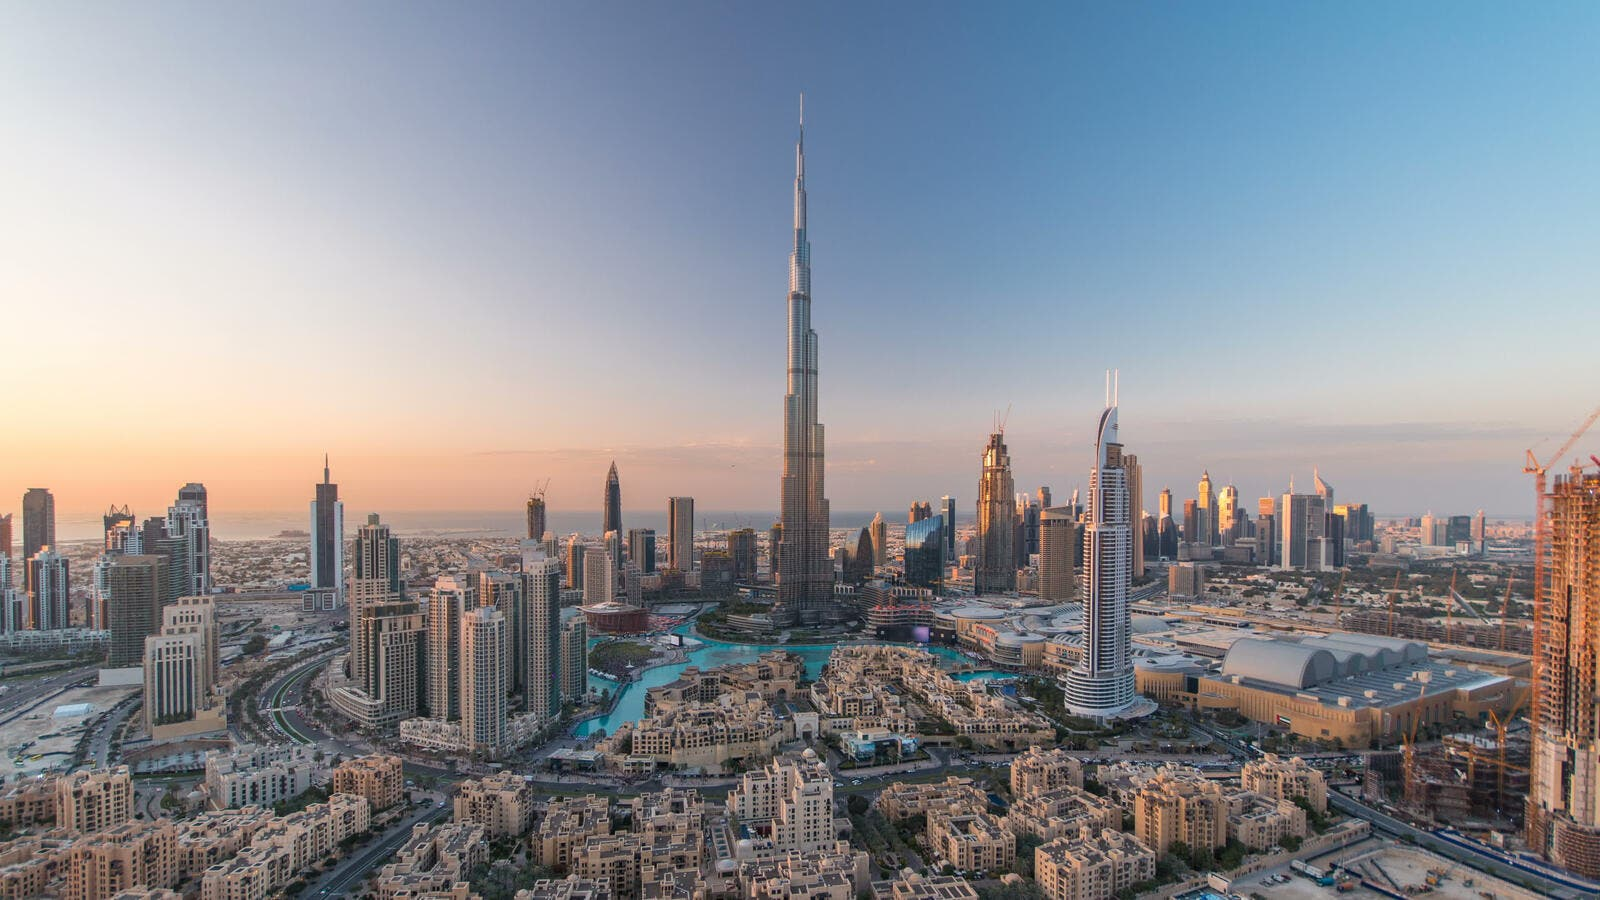 Prime residential property prices in Dubai fell 1.9 per cent in the first half of the year due to an oversupply in real estate market